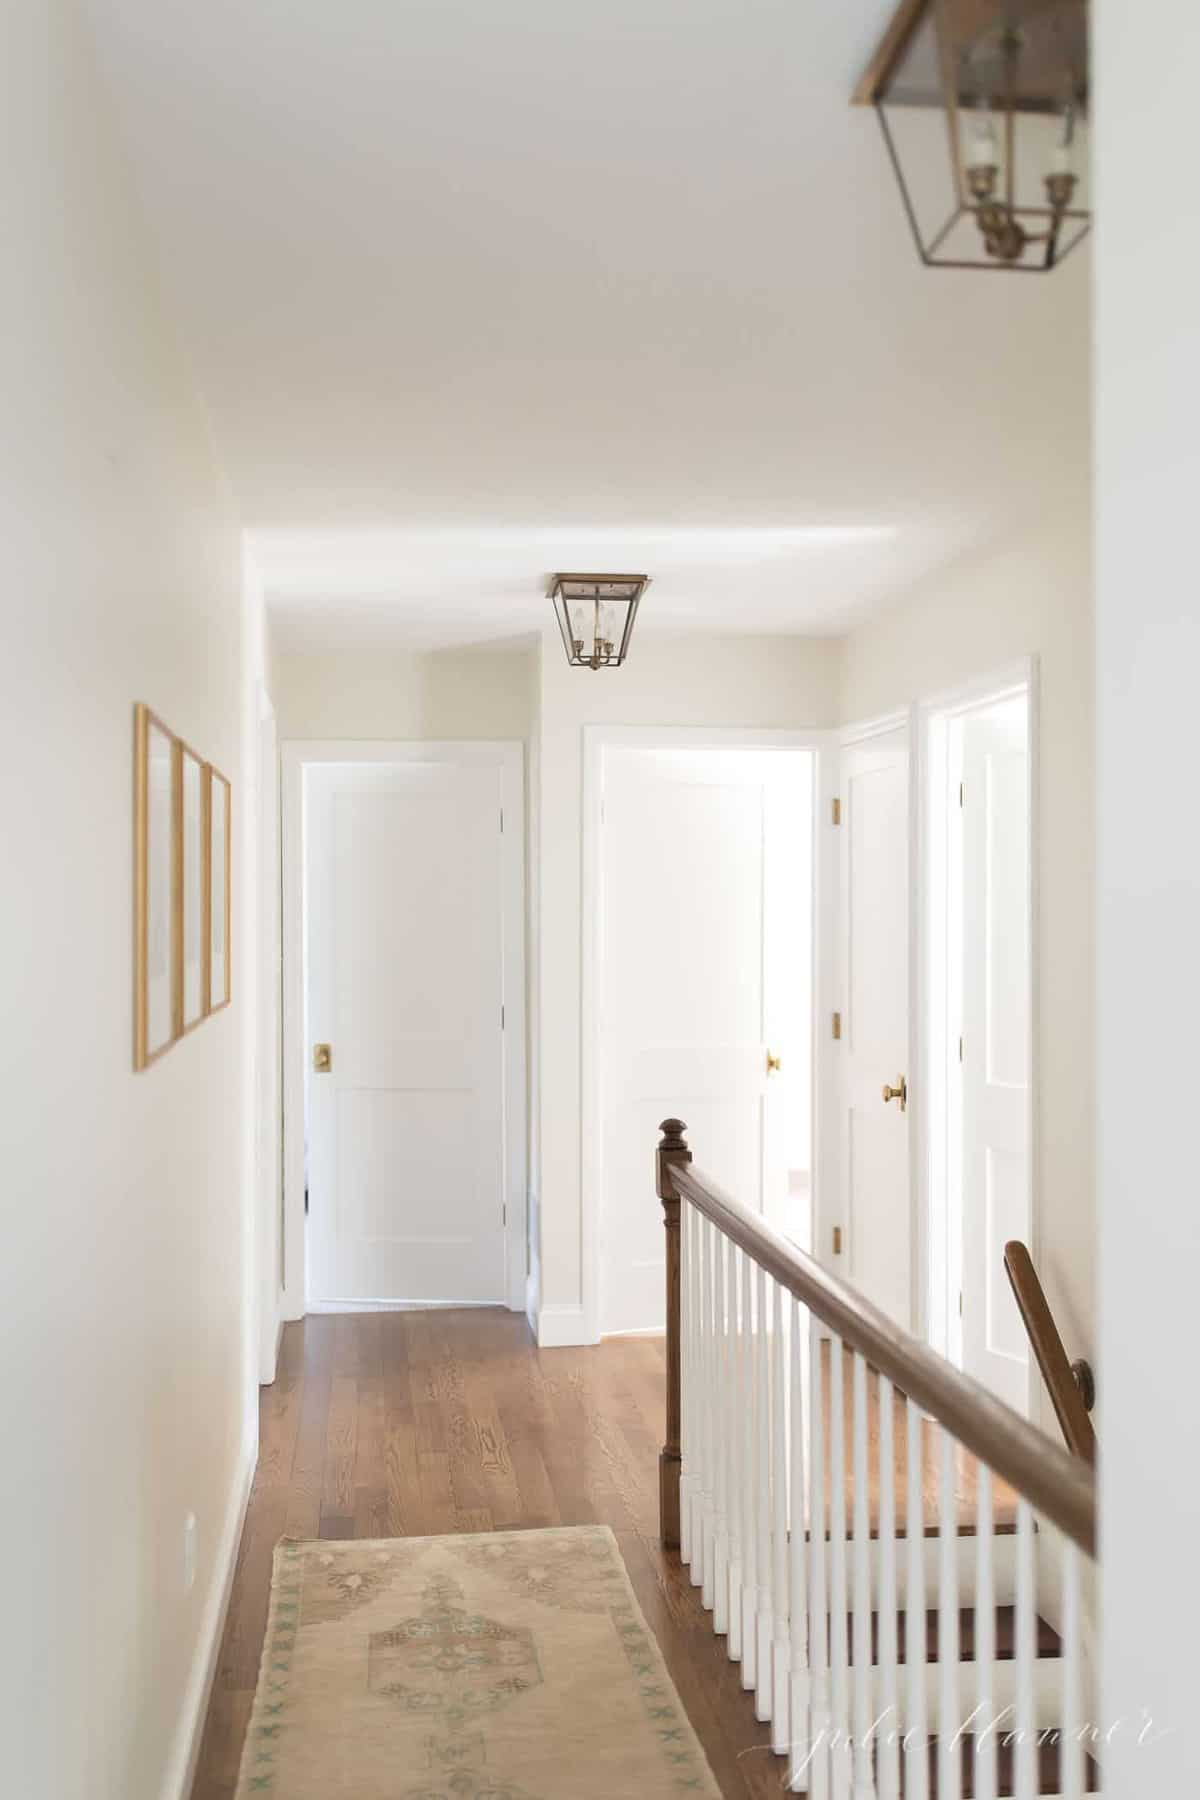 A white upstairs hallway in a home with a Kilim rug on the floor.